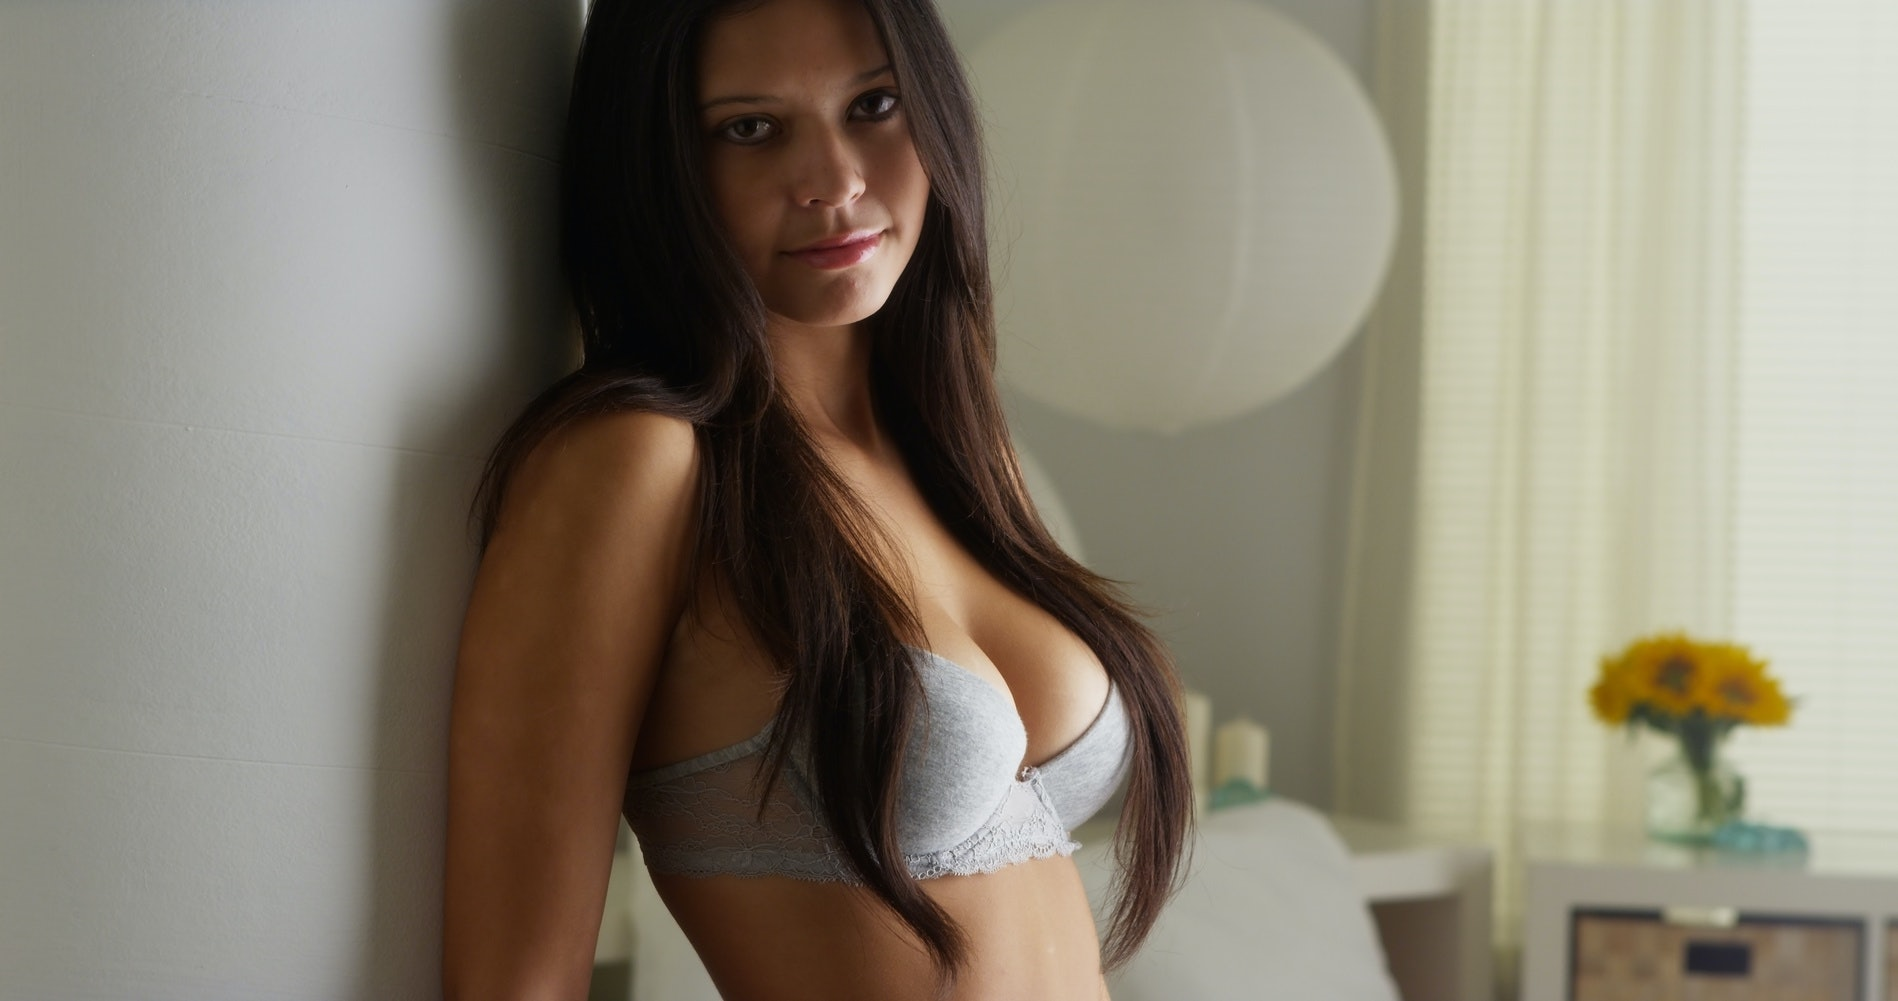 Thin large breasts model